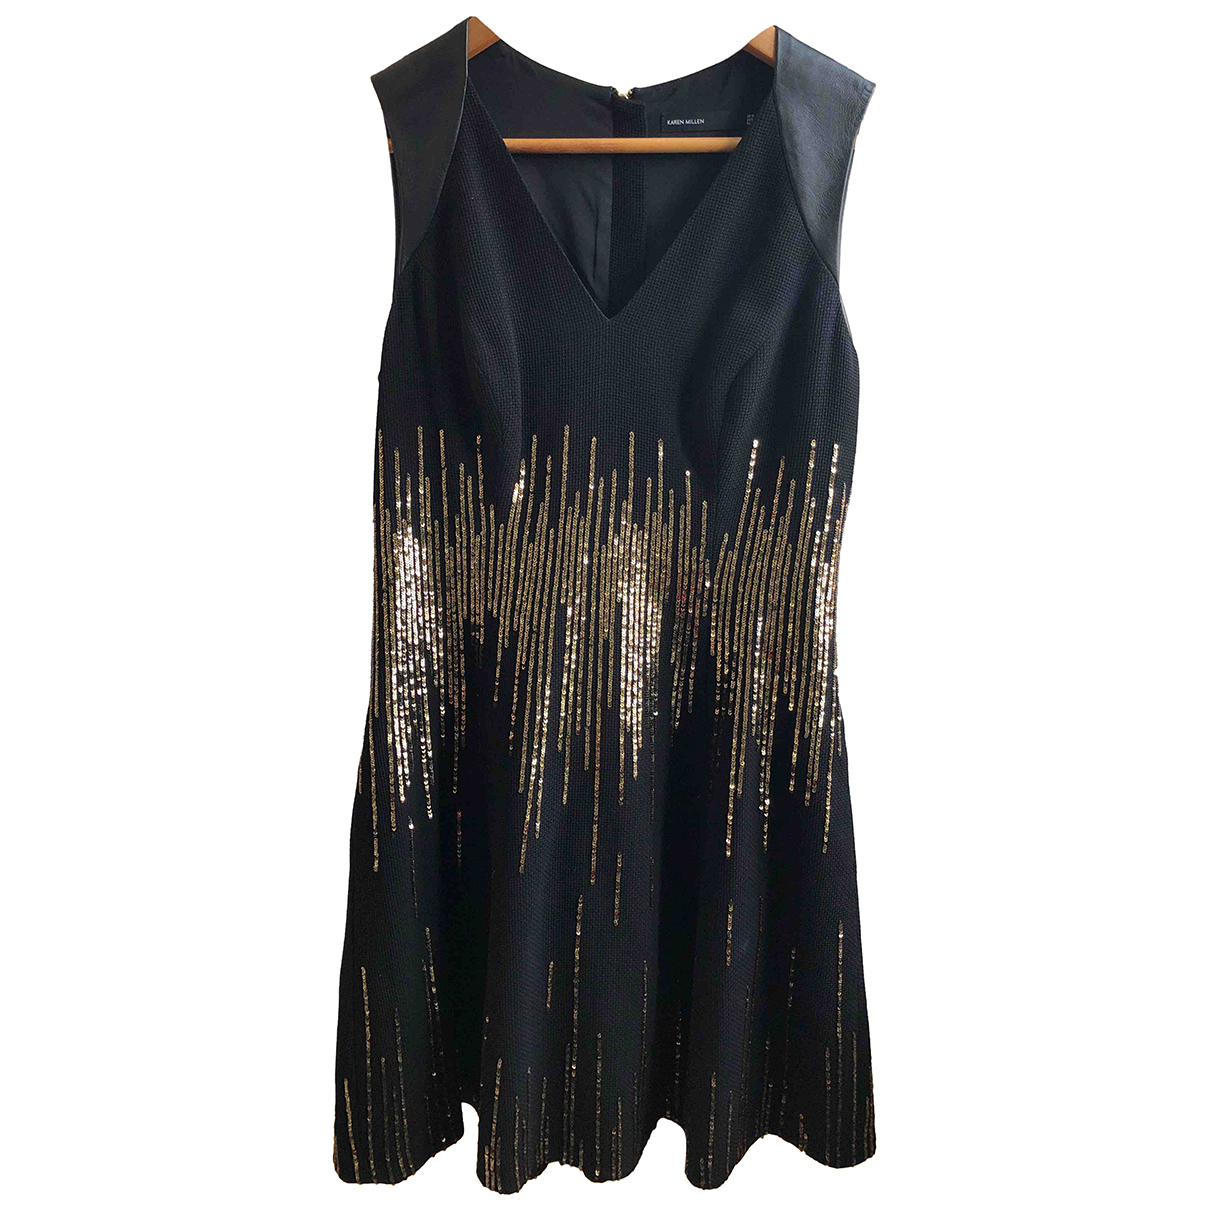 Karen Millen N Black Glitter dress for Women 12 UK